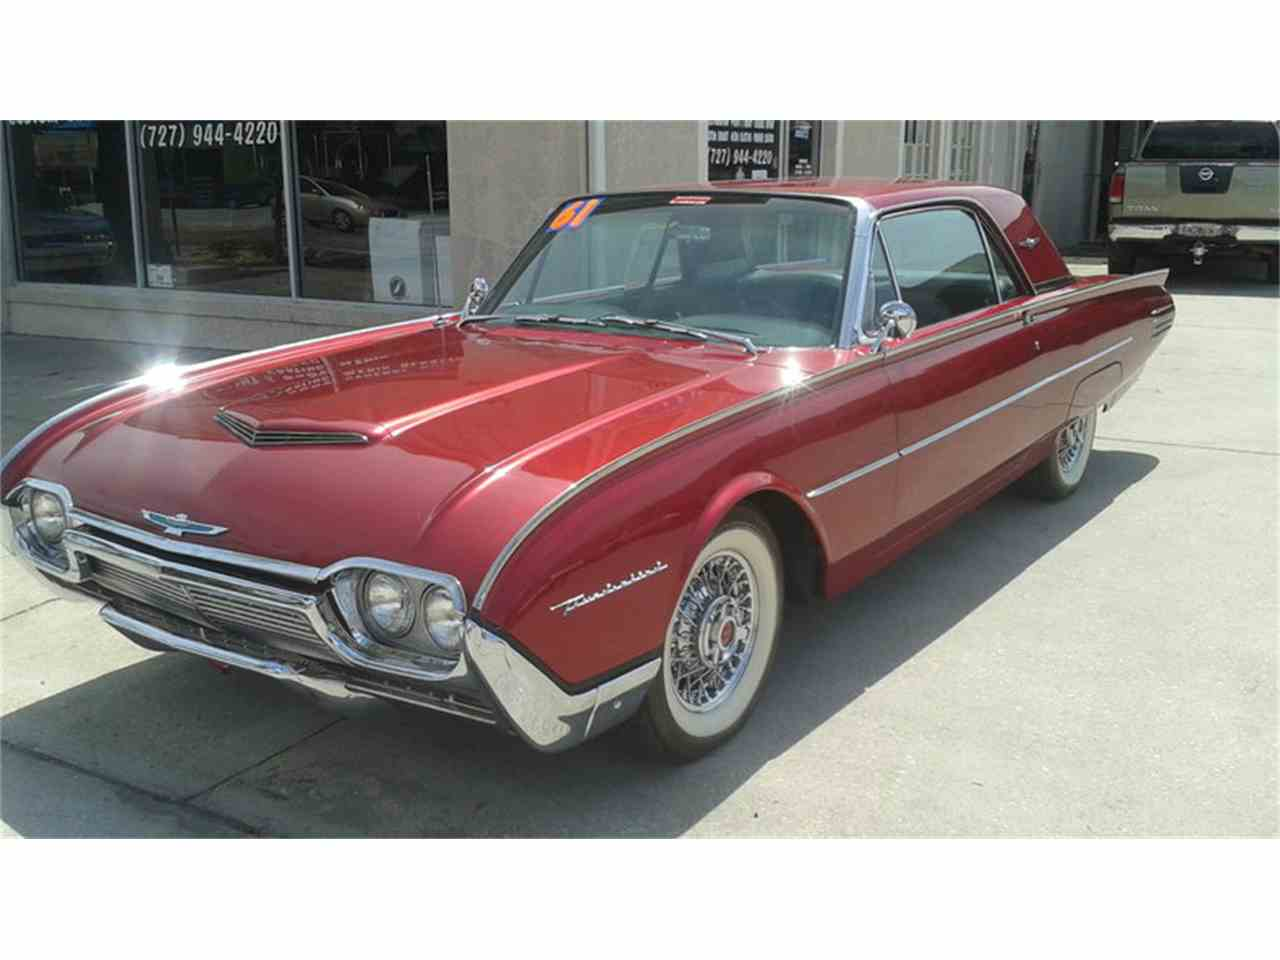 Picture Of Classic 61 Thunderbird Located In Zephyrhills FLORIDA